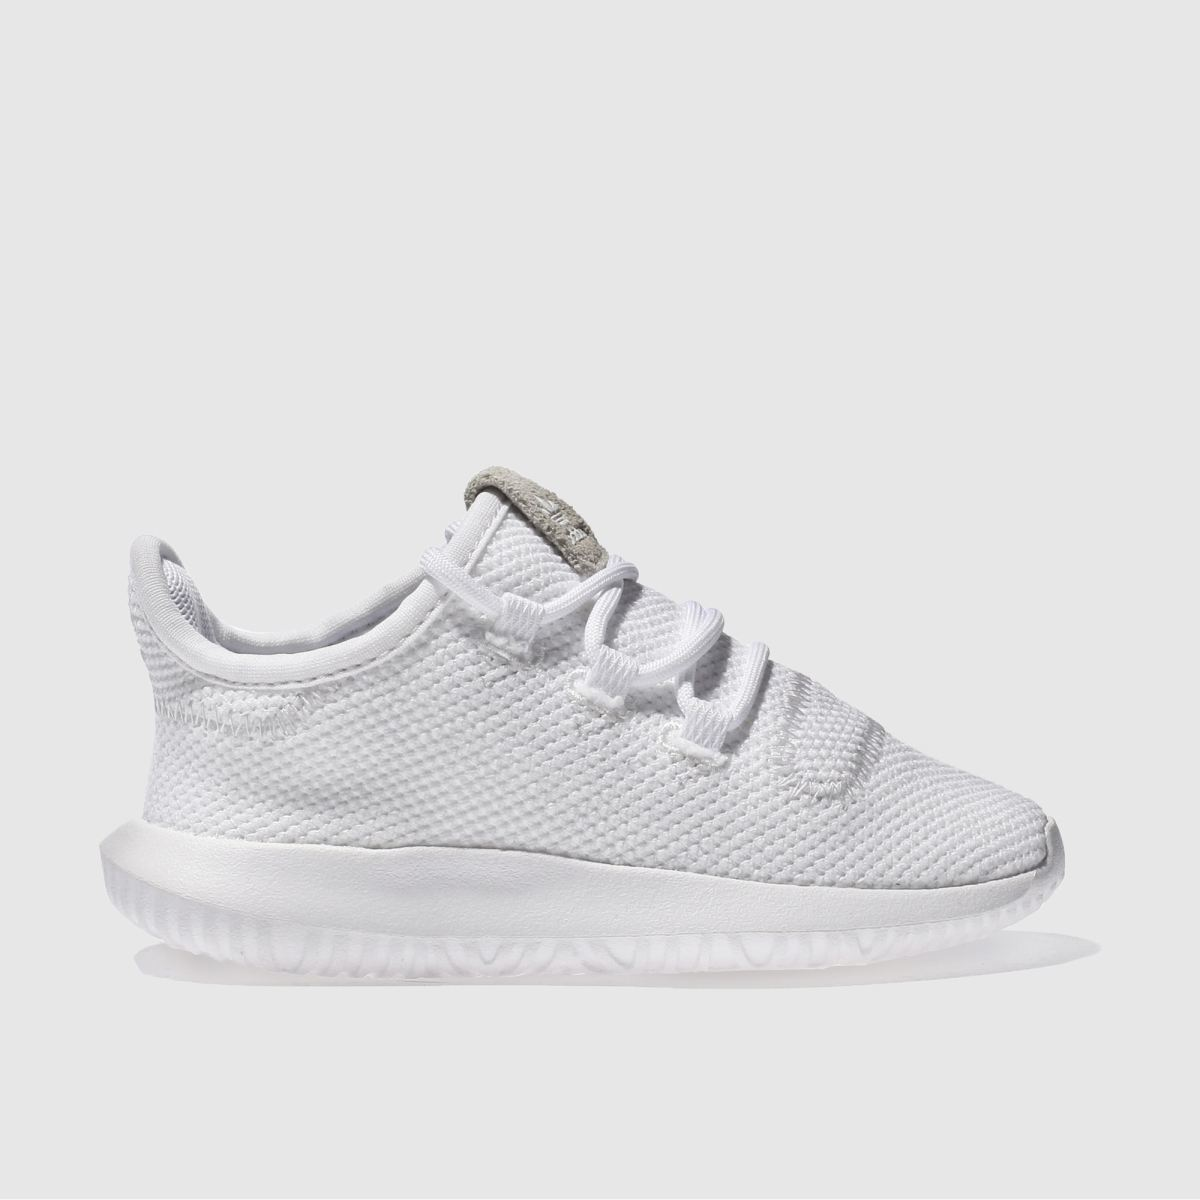 Adidas White Tubular Shadow Unisex Toddler Toddler